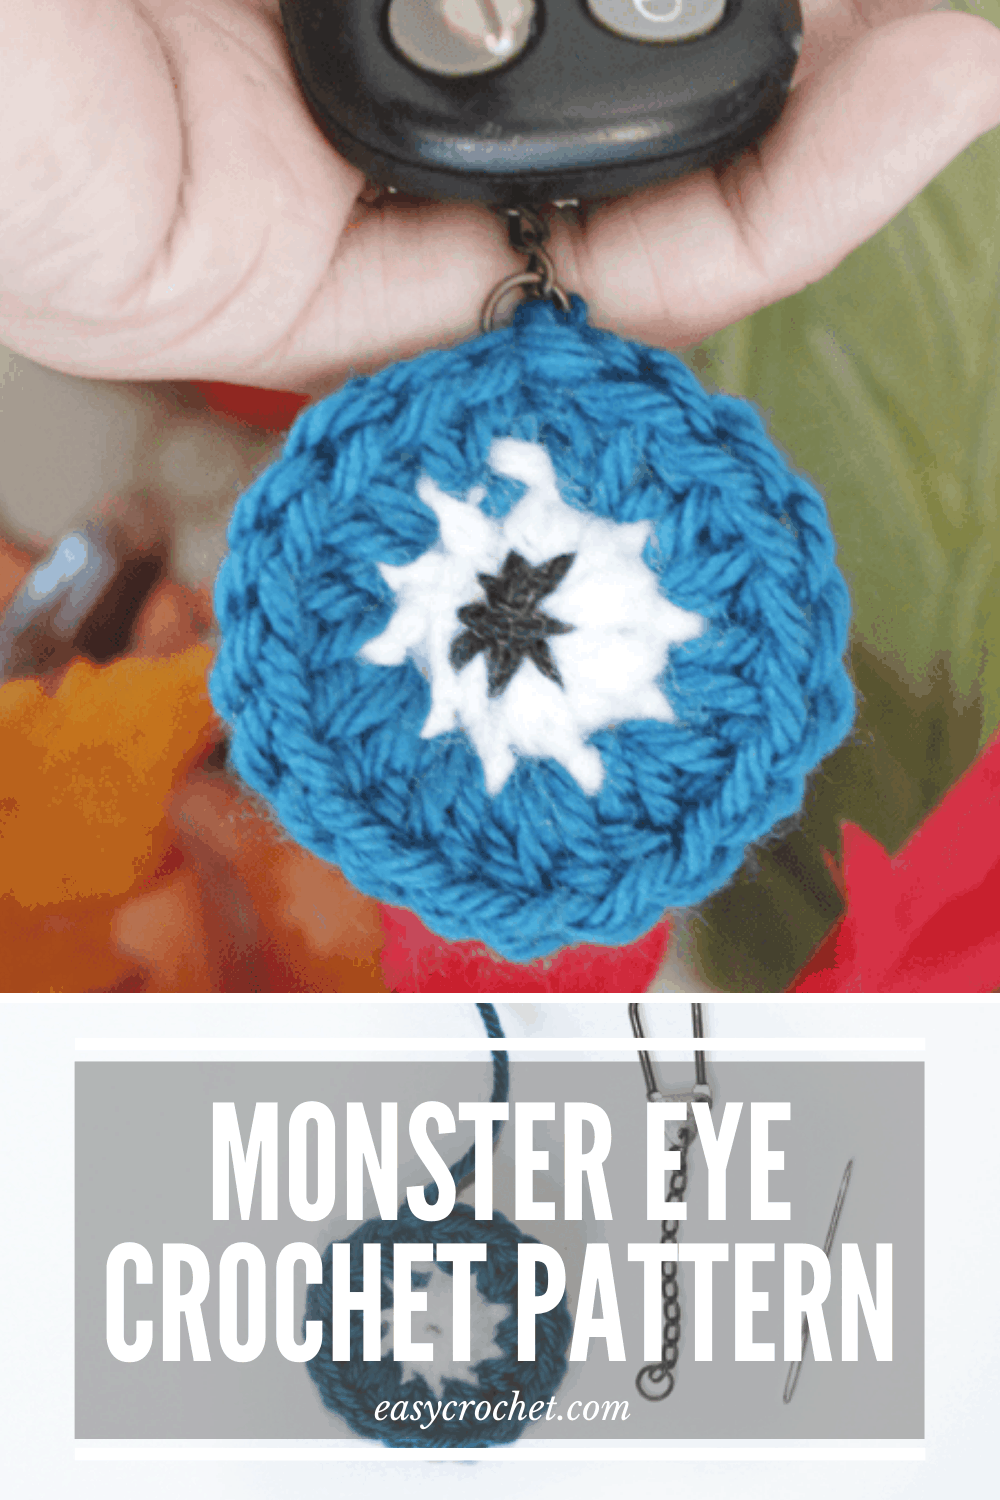 Monster Eye Keychain Crochet Pattern that is perfect for Halloween! Find the free crochet pattern at easycrochet.com via @easycrochetcom